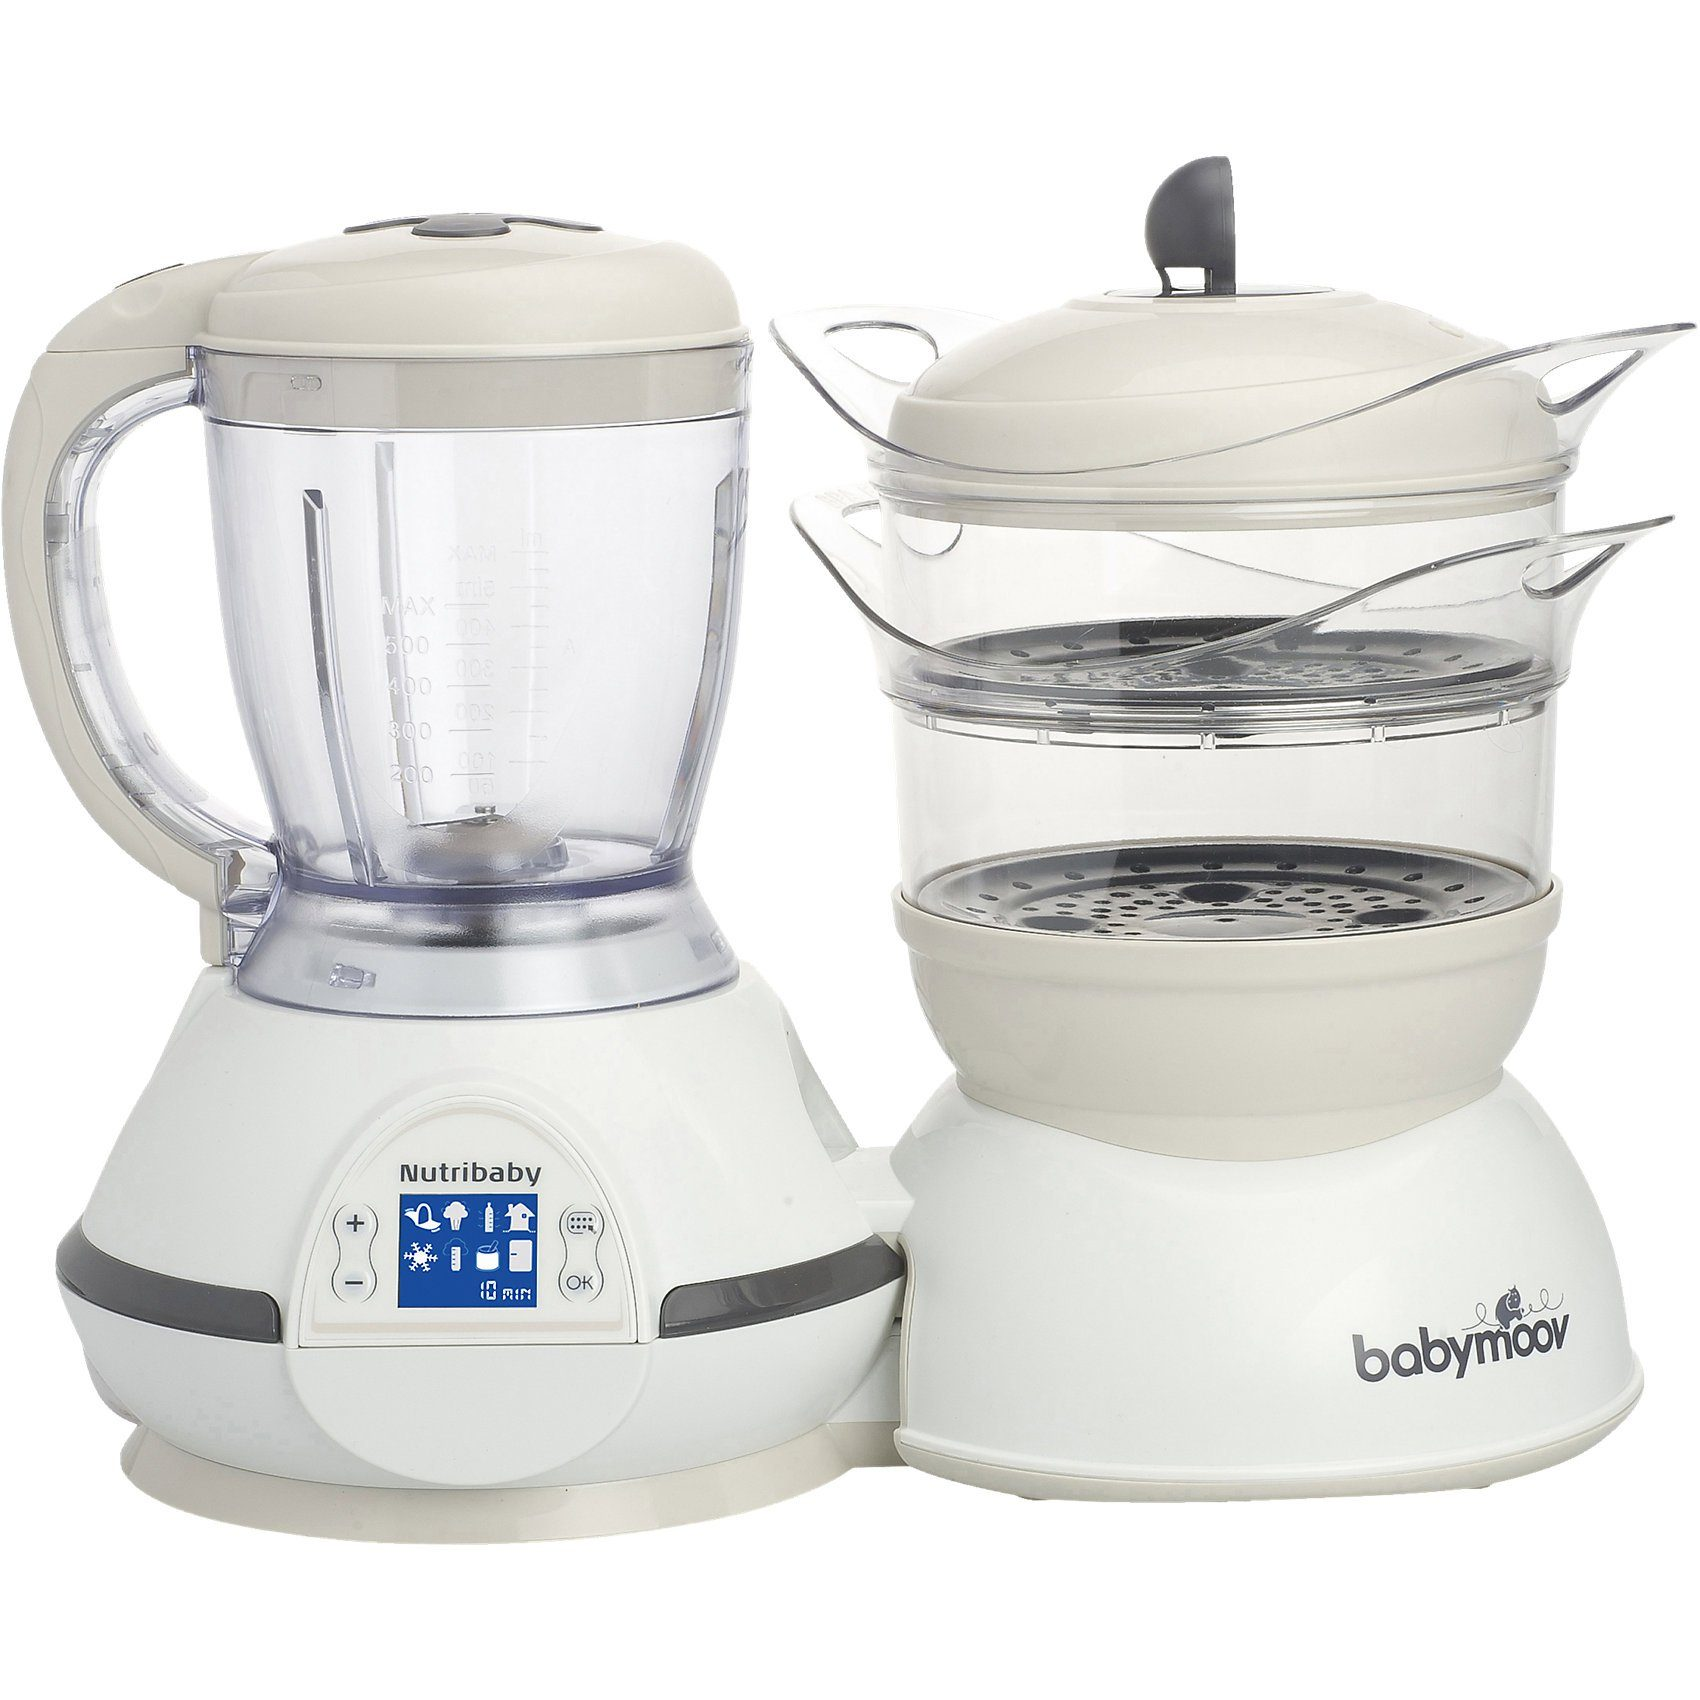 Babymoov Multifunktionsgerät Nutribaby 5 in 1, Cream